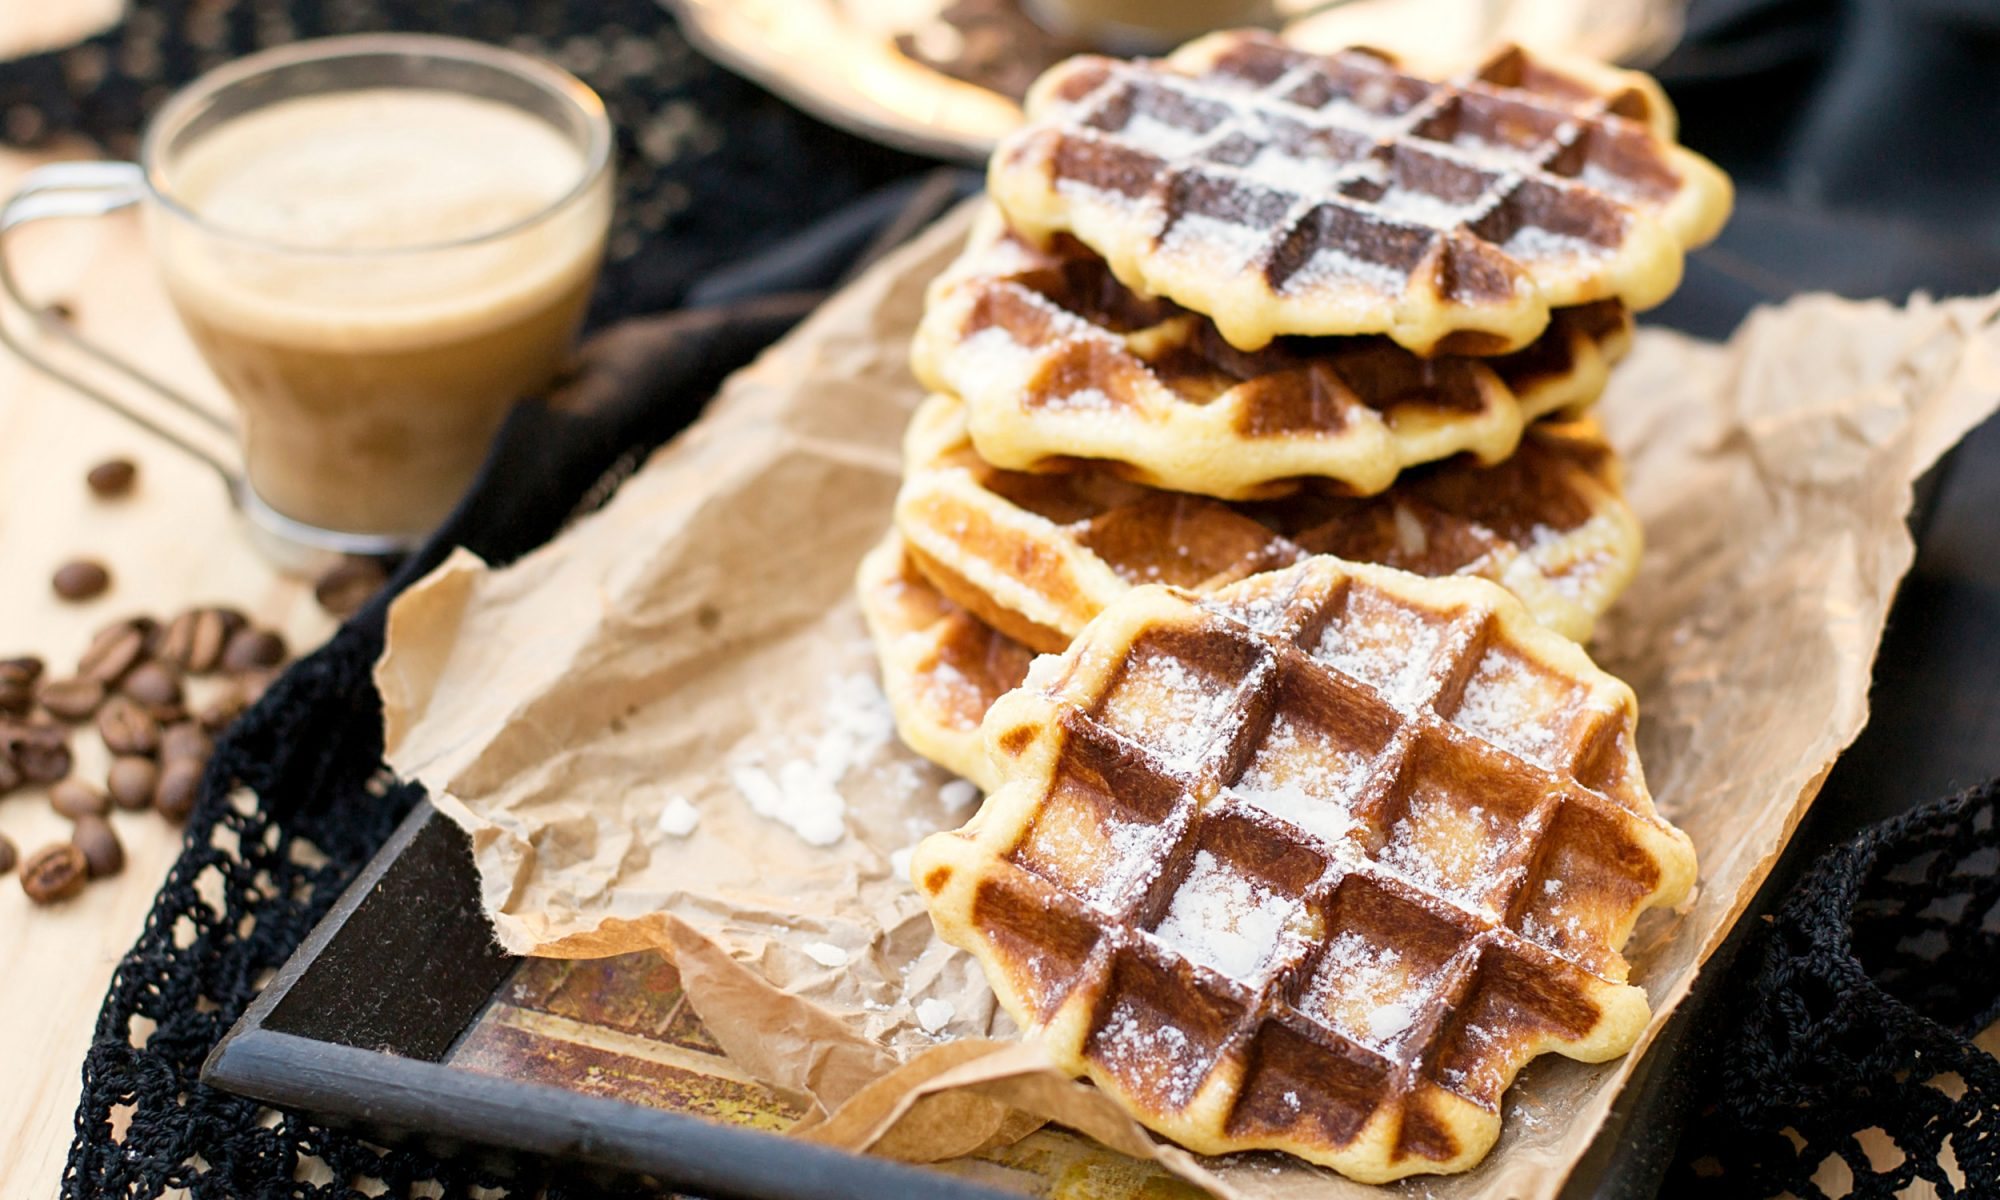 EC: The Belgian Government Wants Its Citizens to Eat Fewer Waffles